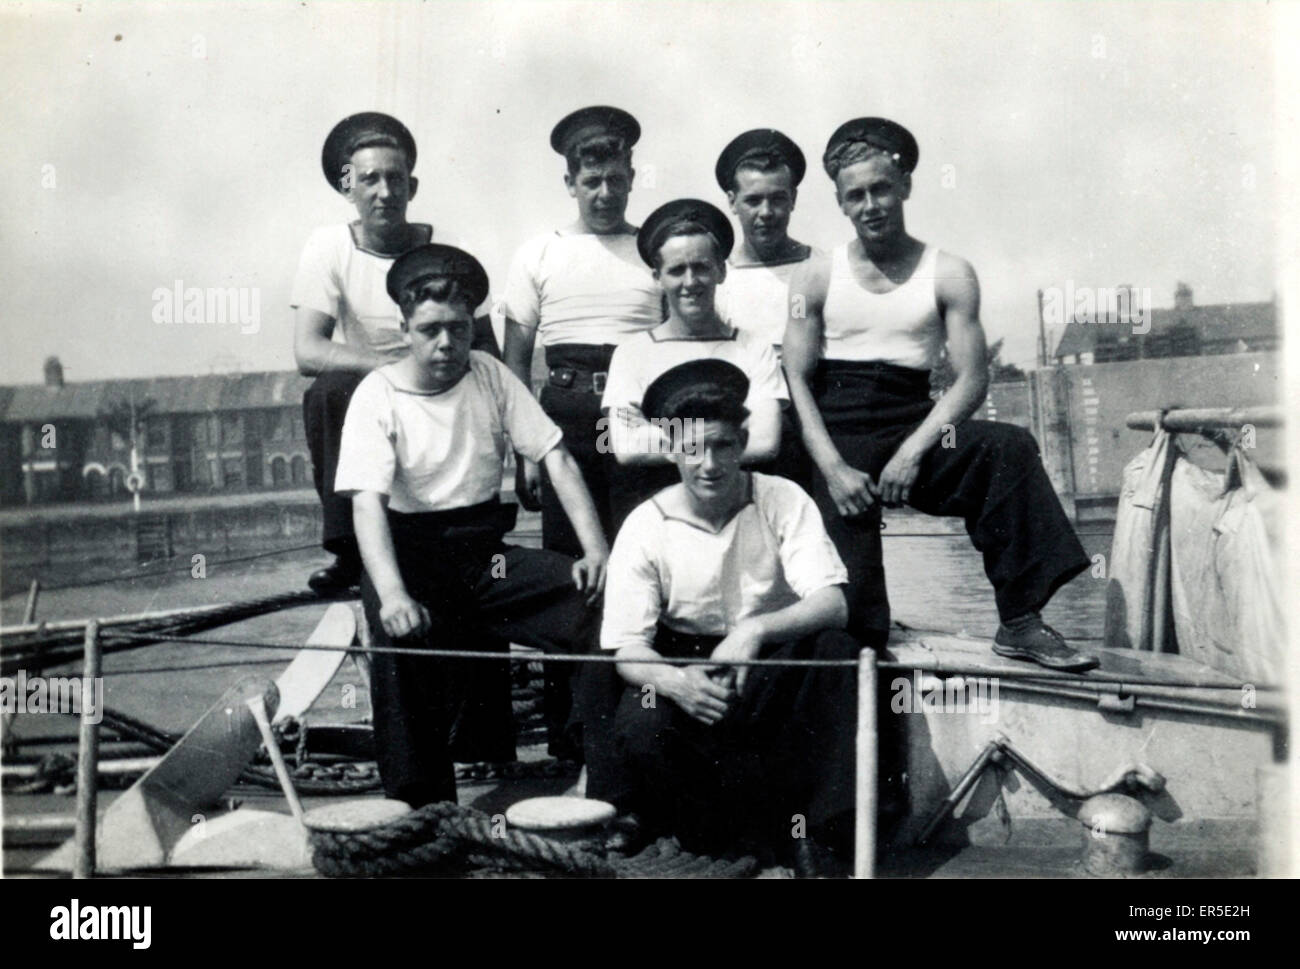 Navy Personnel, Southampton, Hampshire, England.  1950s - Stock Image